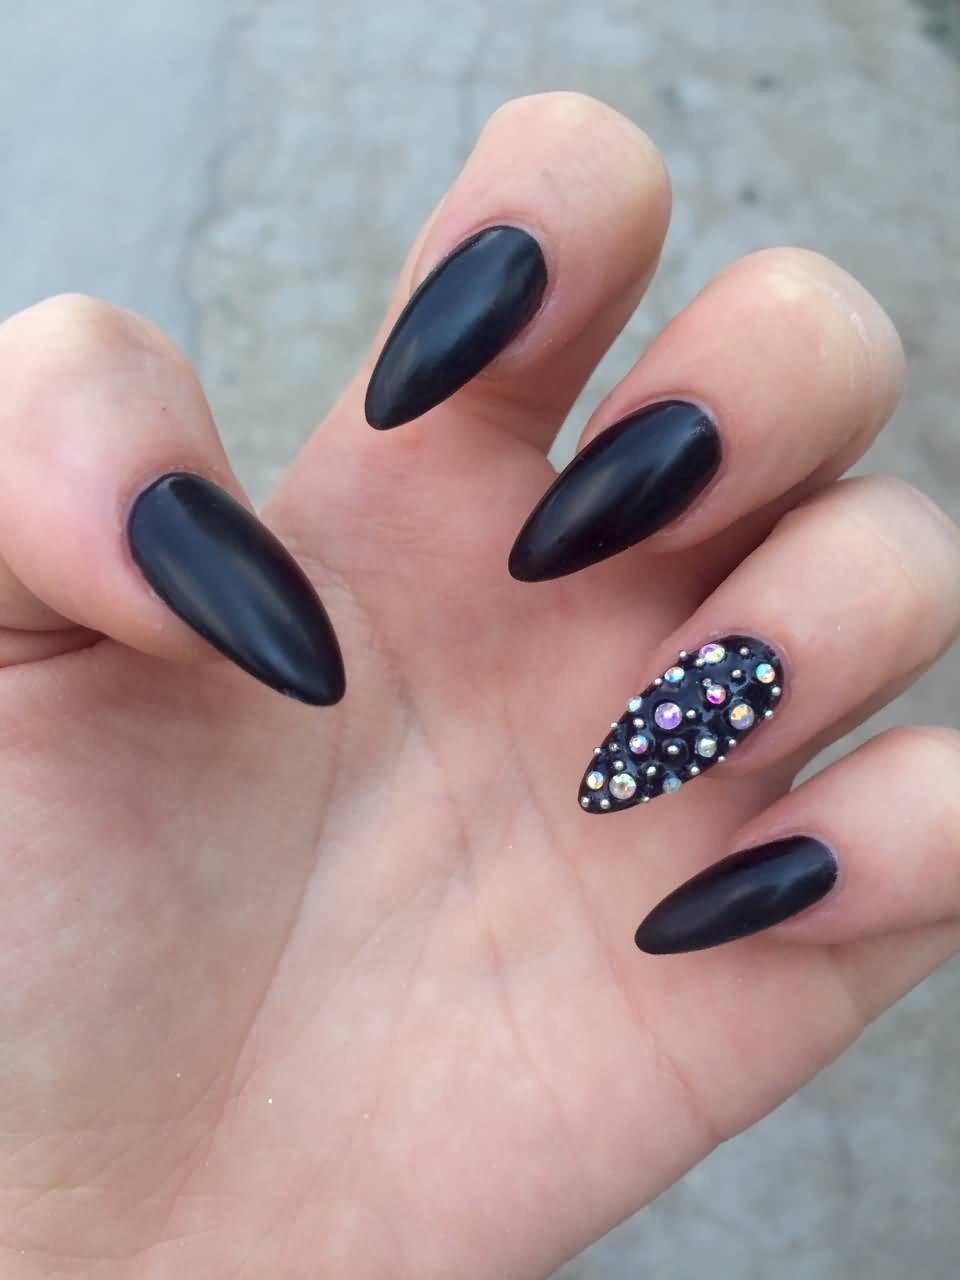 Stiletto Nails Fake Nails Matte Nails Blue Press On Nails: 55 Most Stylish Matte Stiletto Nail Art Designs